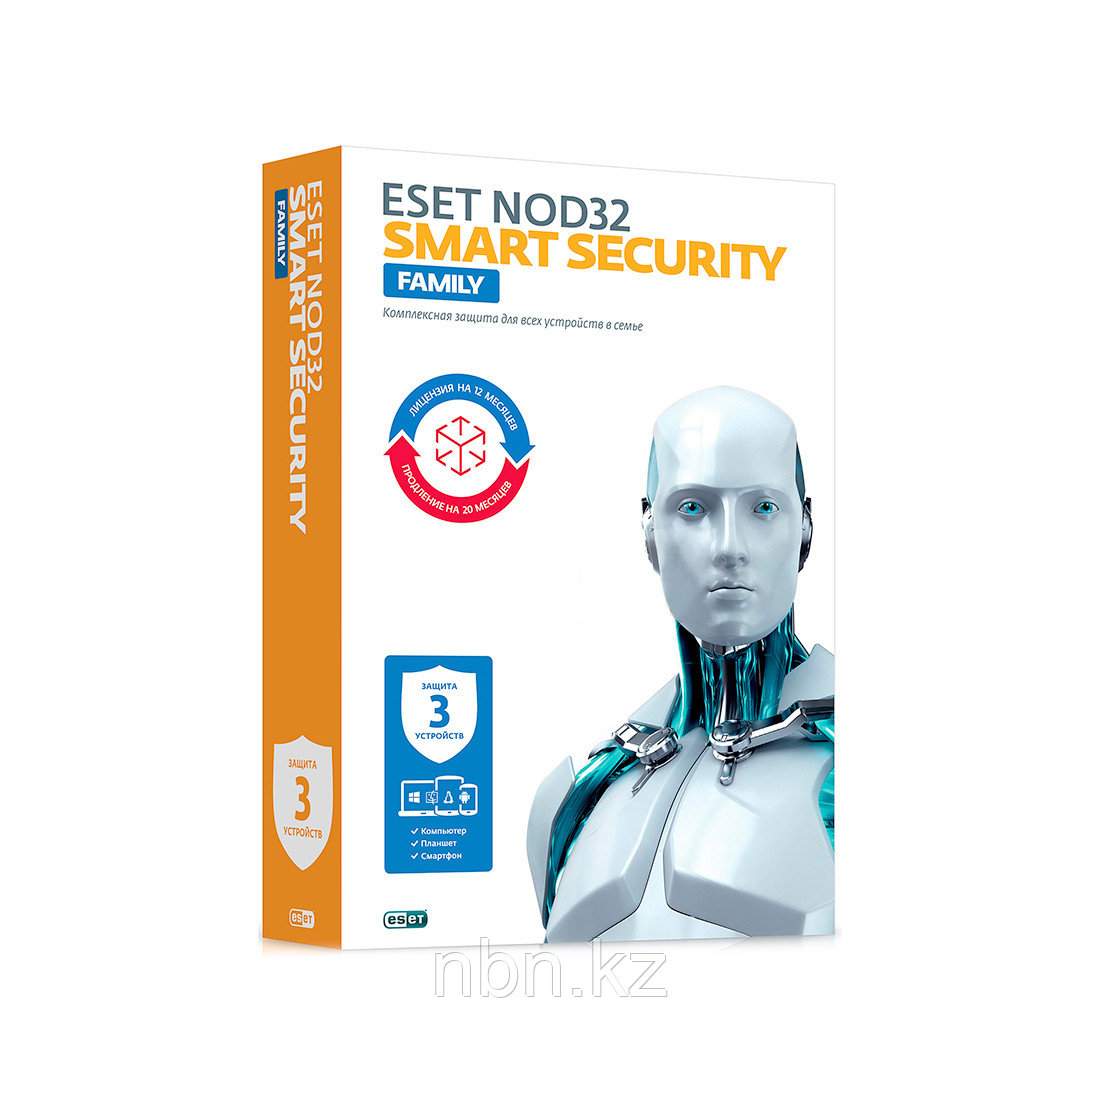 Антивирус Eset NOD32 Smart Security Family 1 год 3 ПК - BOX продление или новая лицензия на 1 год